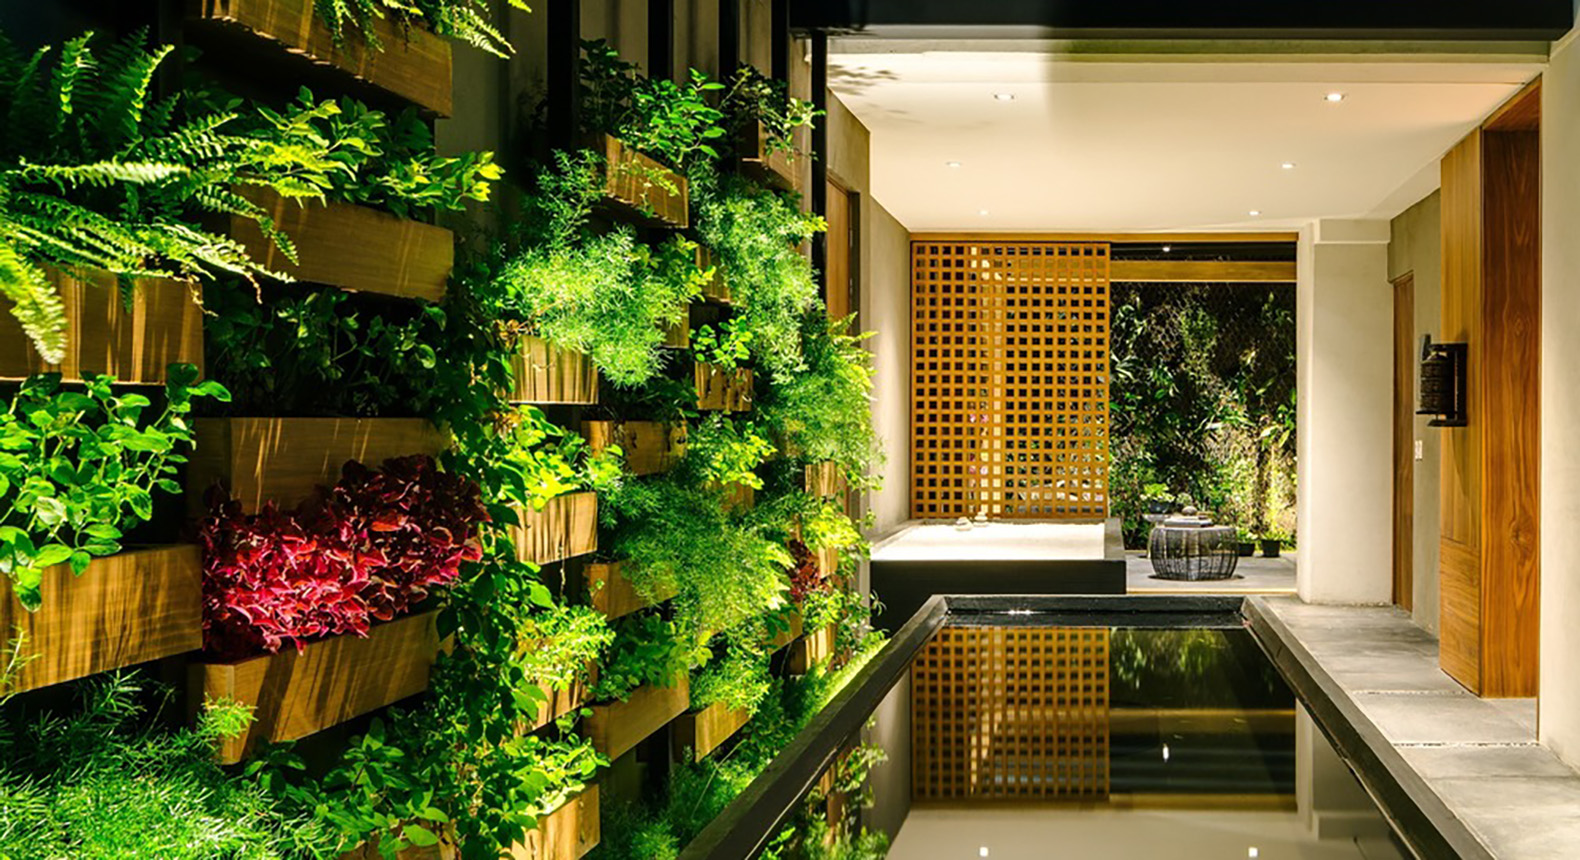 Verdant Villa Jardín has a gorgeous vertical garden in Mexico City